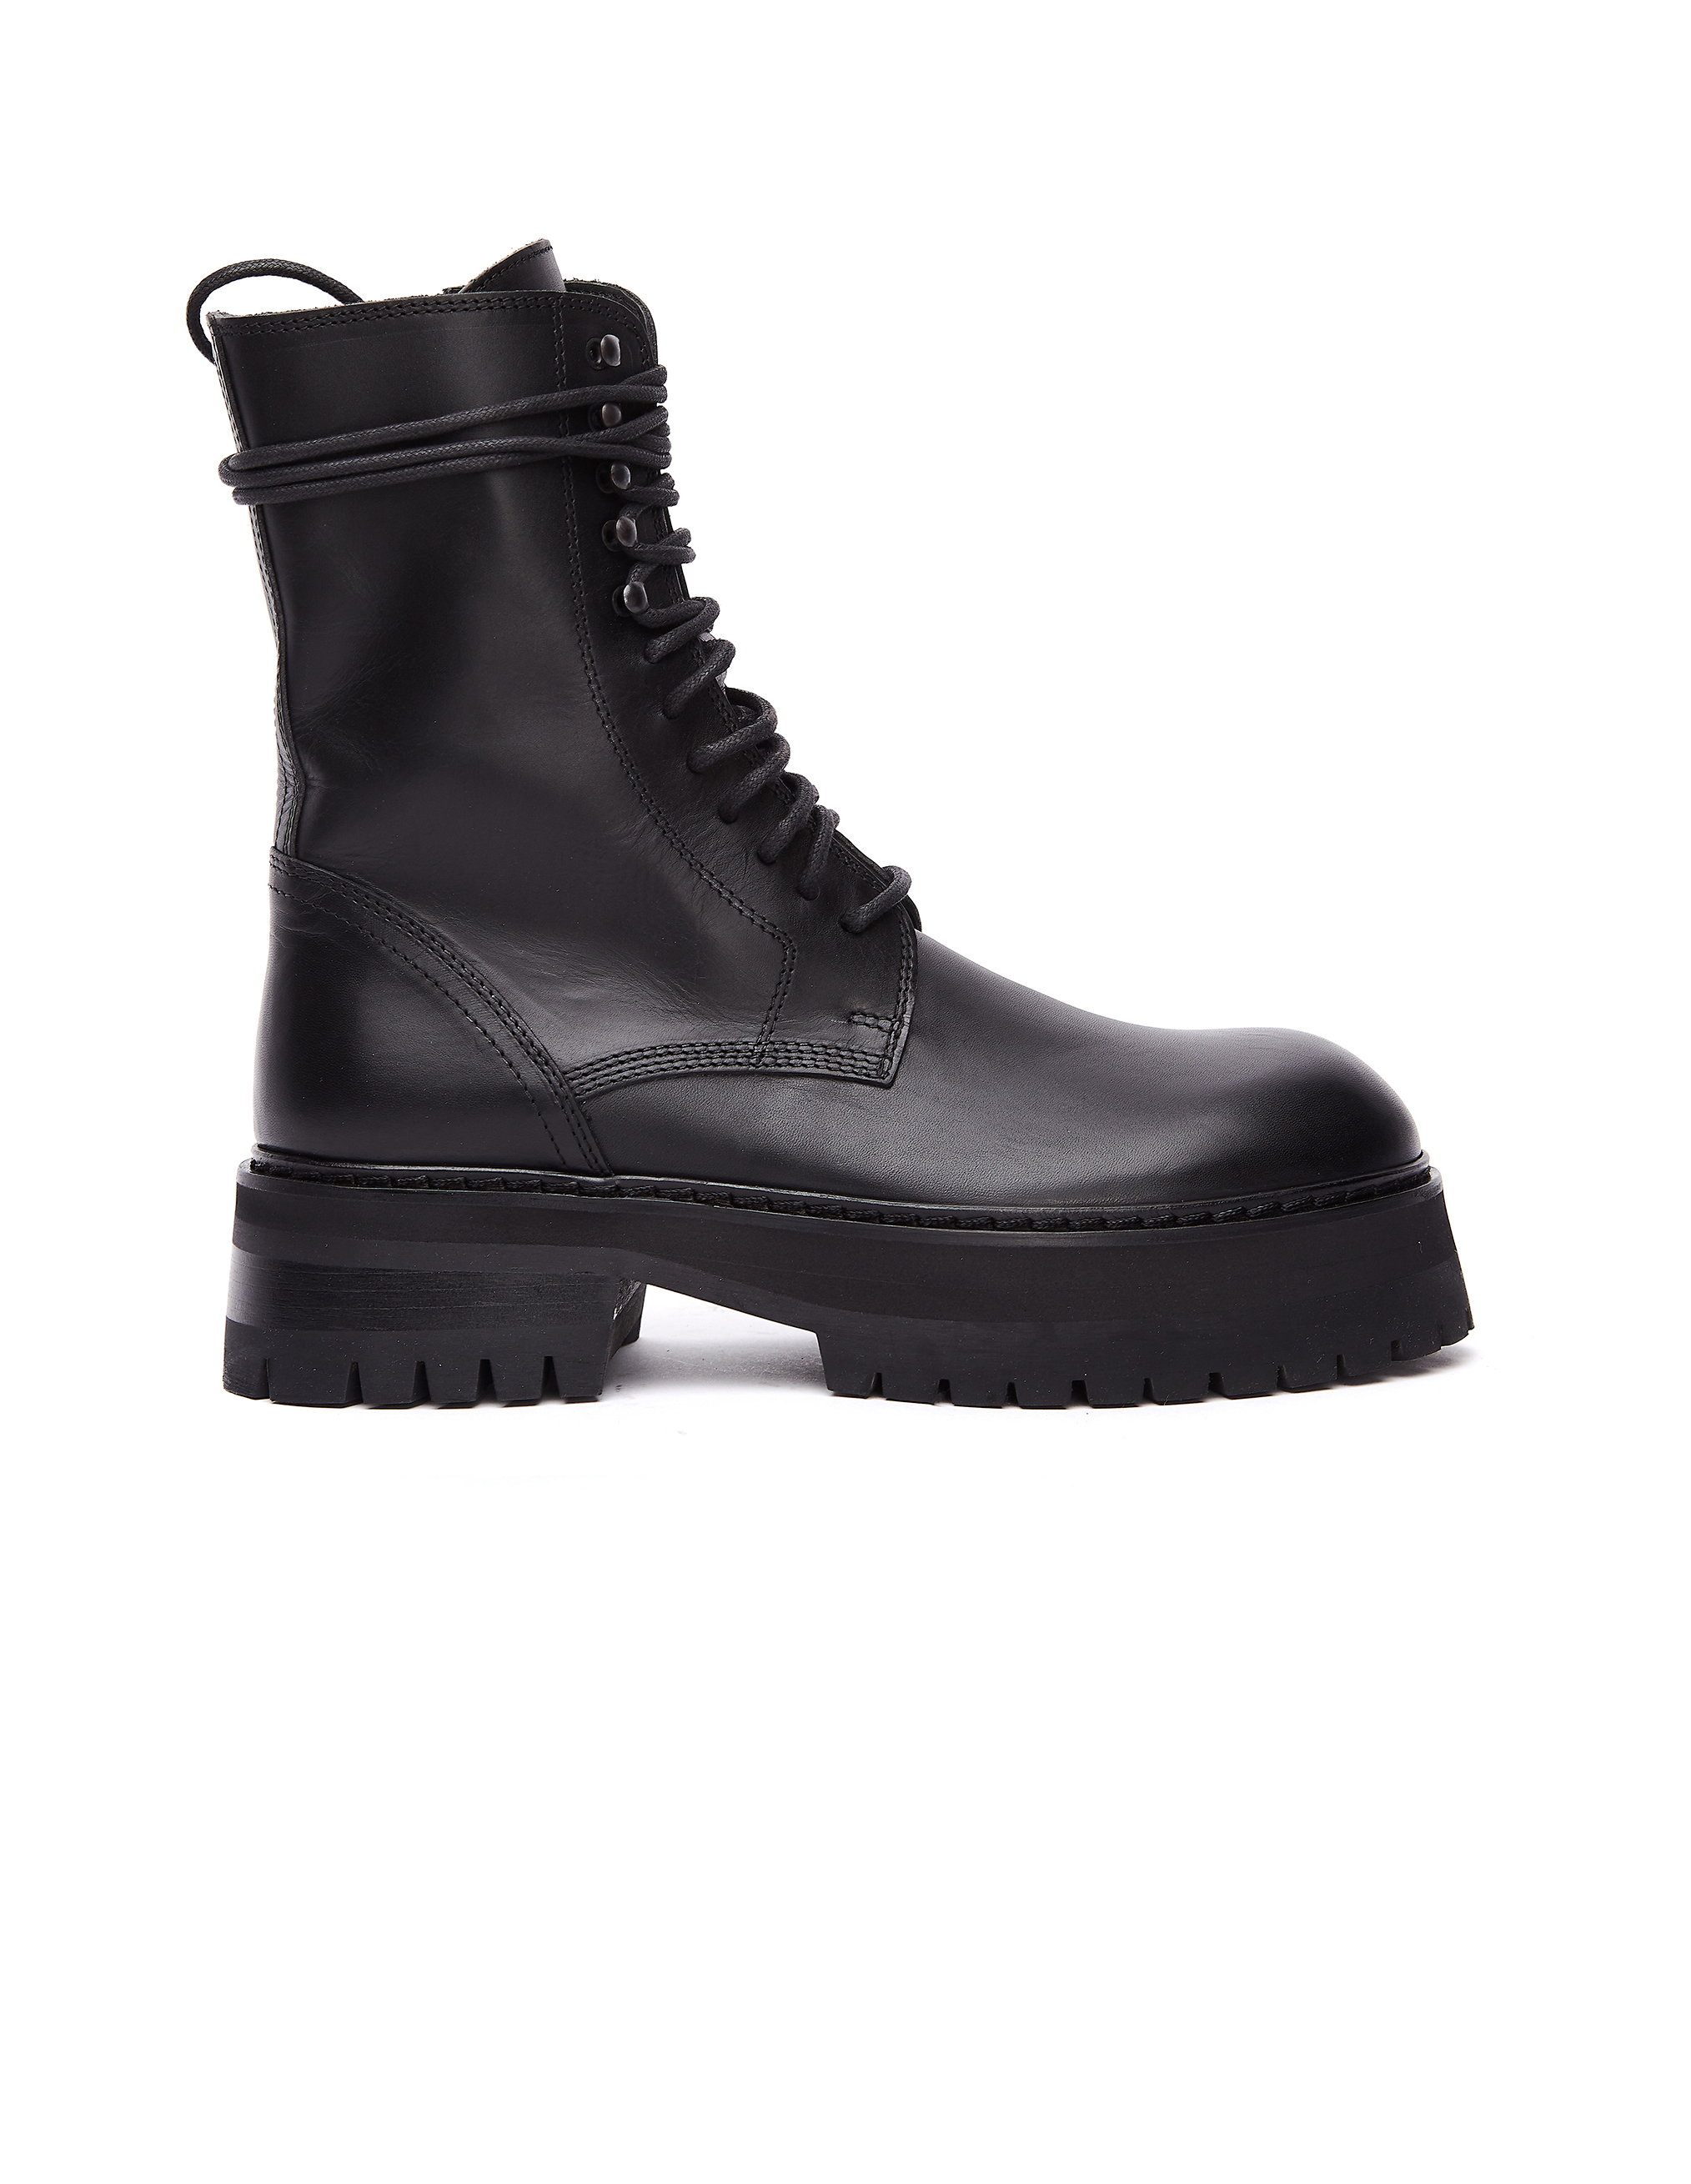 Ann Demeulemeester Leather Massive Boots